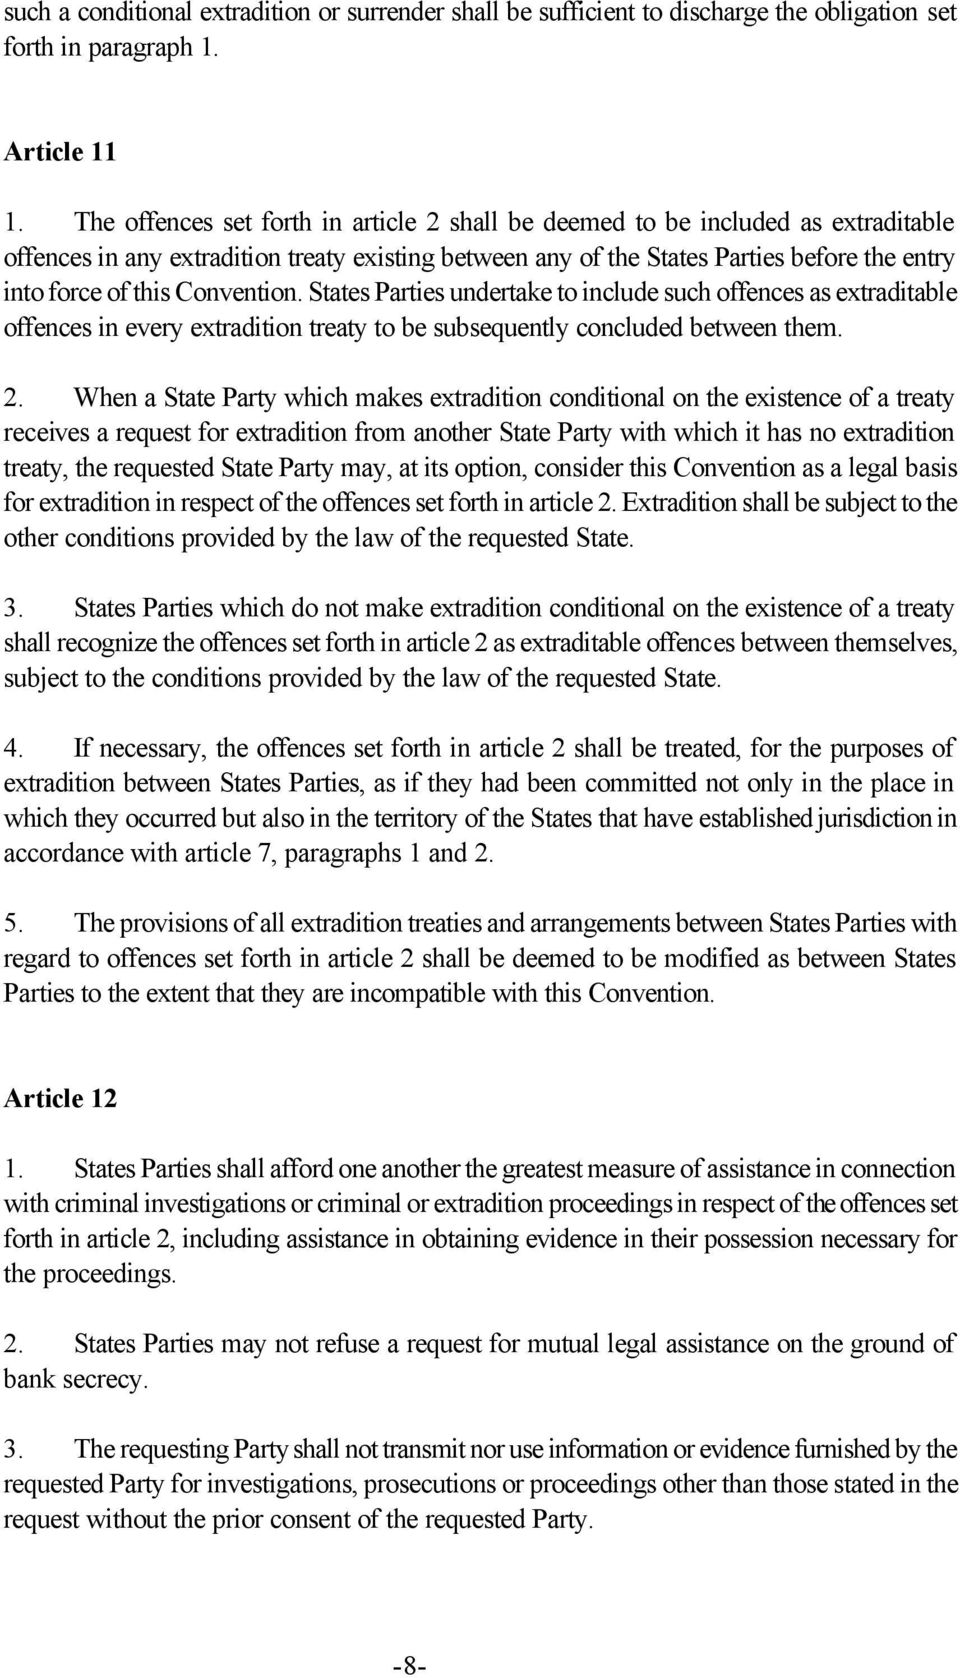 Convention. States Parties undertake to include such offences as extraditable offences in every extradition treaty to be subsequently concluded between them. 2.